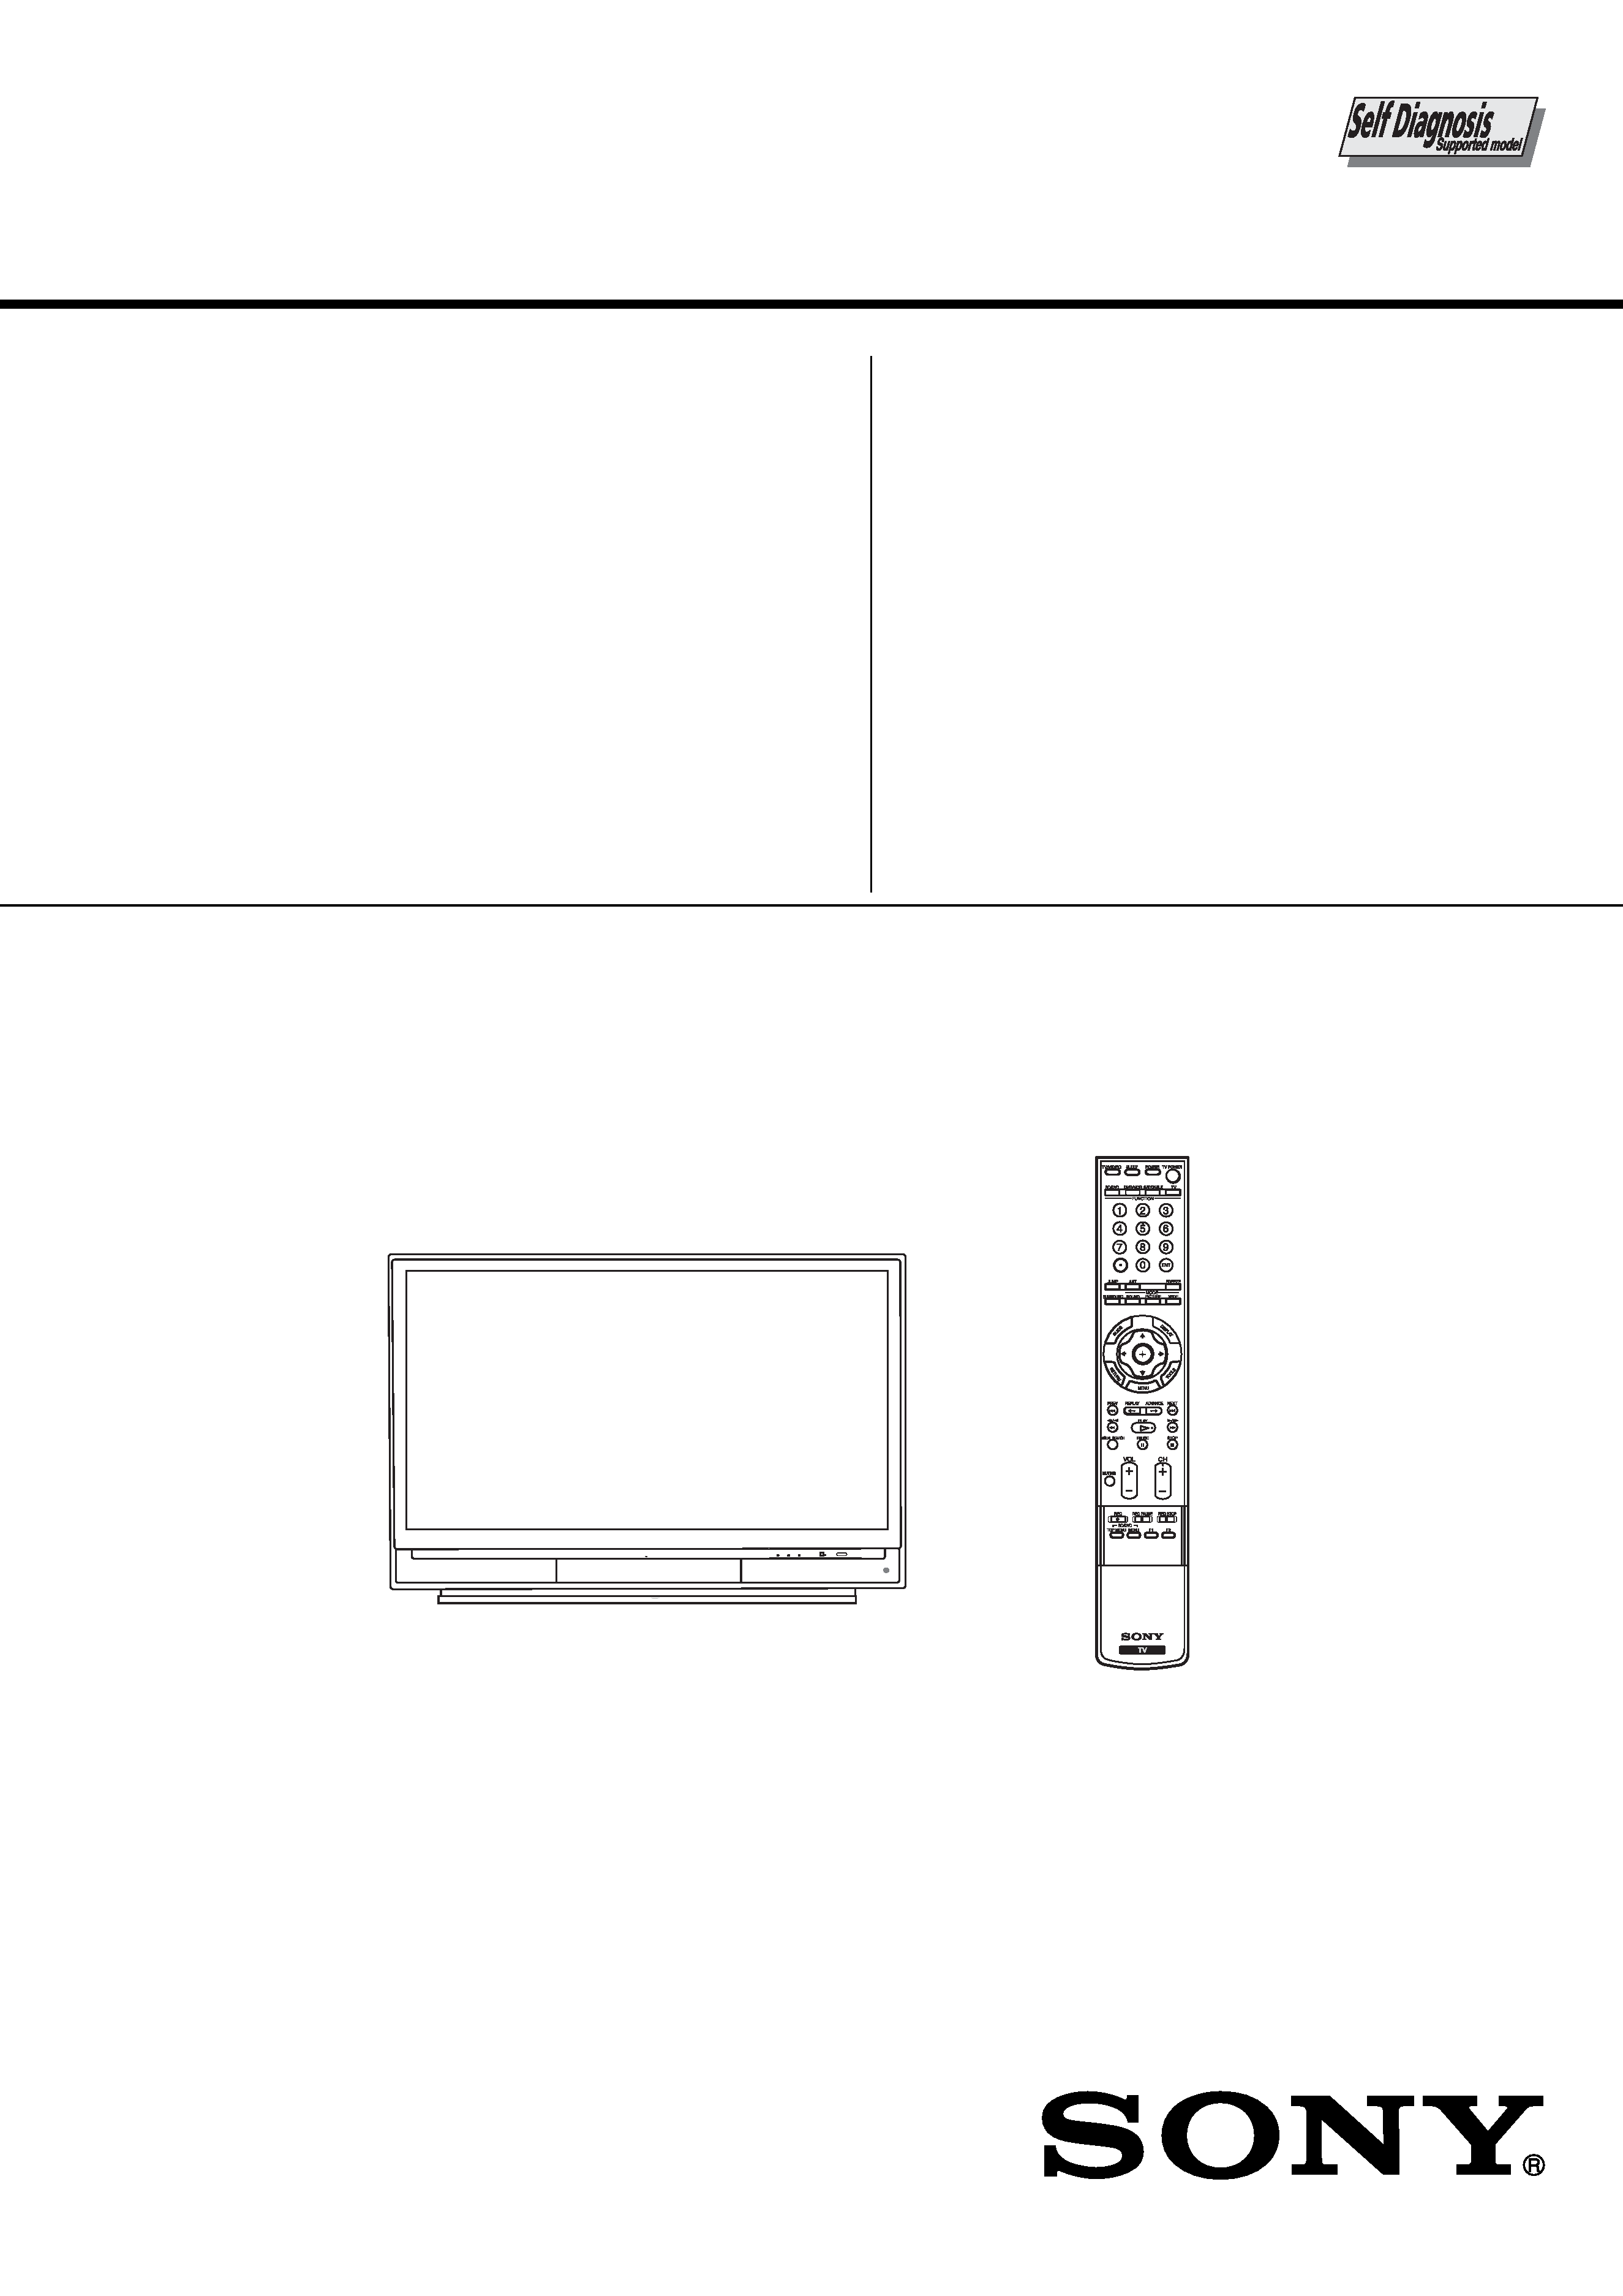 Sony Kds 55a2000 Service Manual Immediate Download